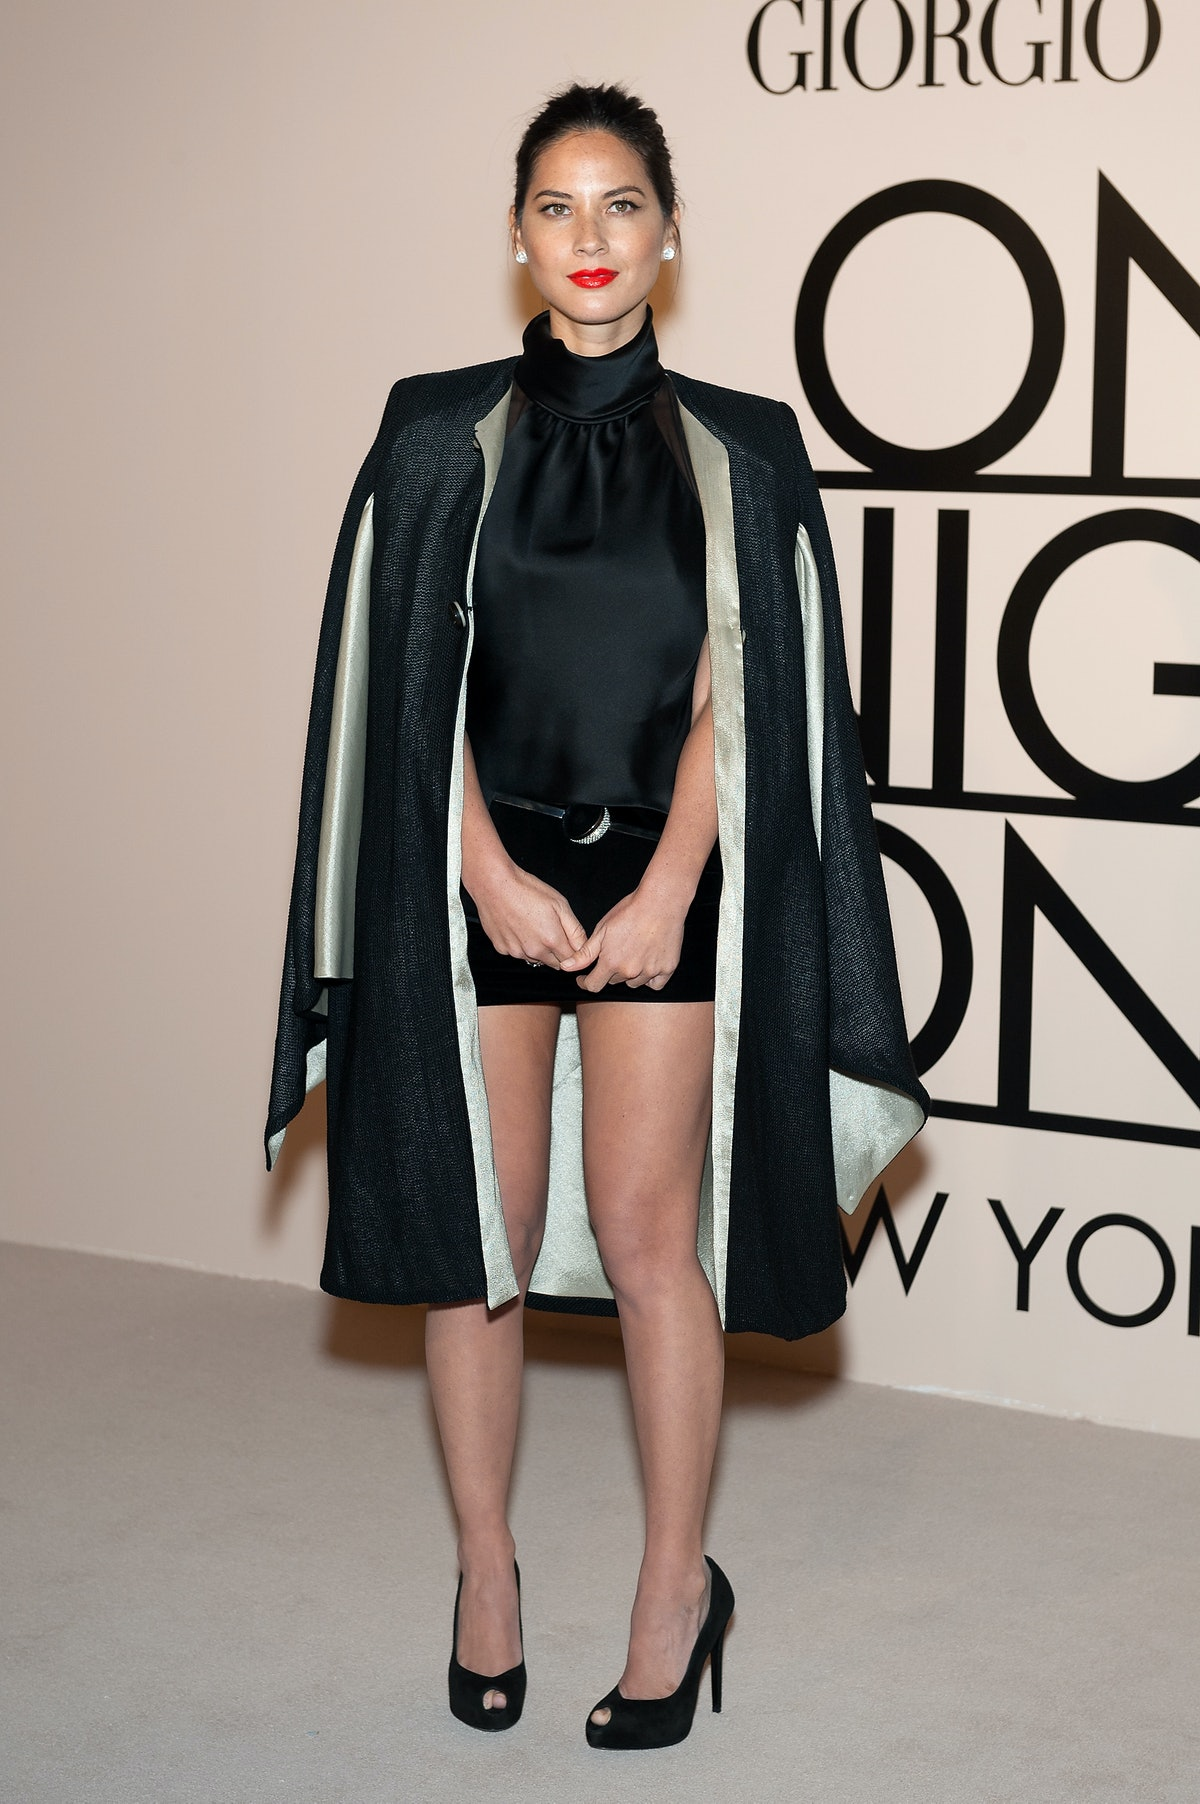 Armani - One Night Only New York - Arrivals